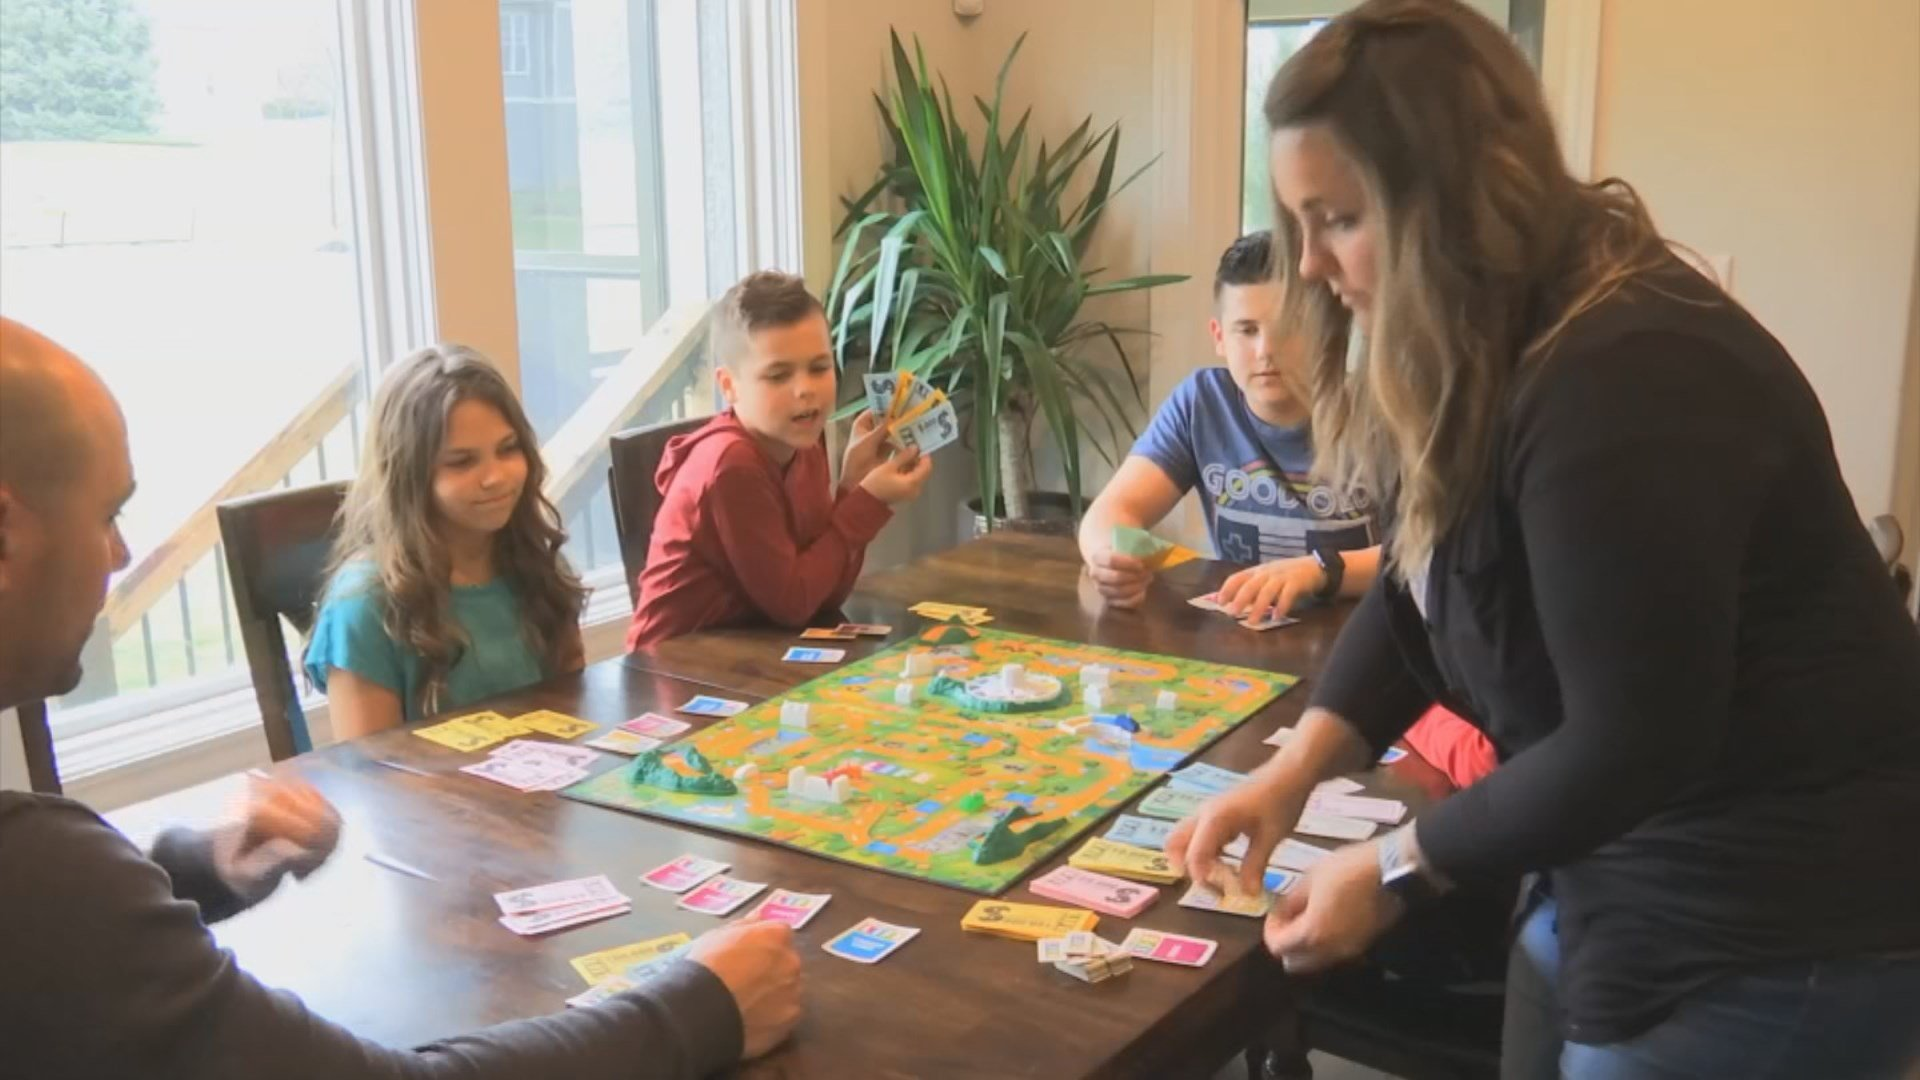 For kids, summer break is something they look forward to. Church groups, sports camps and shuffling kids between friends can put a strain on the budget. Thankfully, there are money-saving resources out there. (KCTV5)